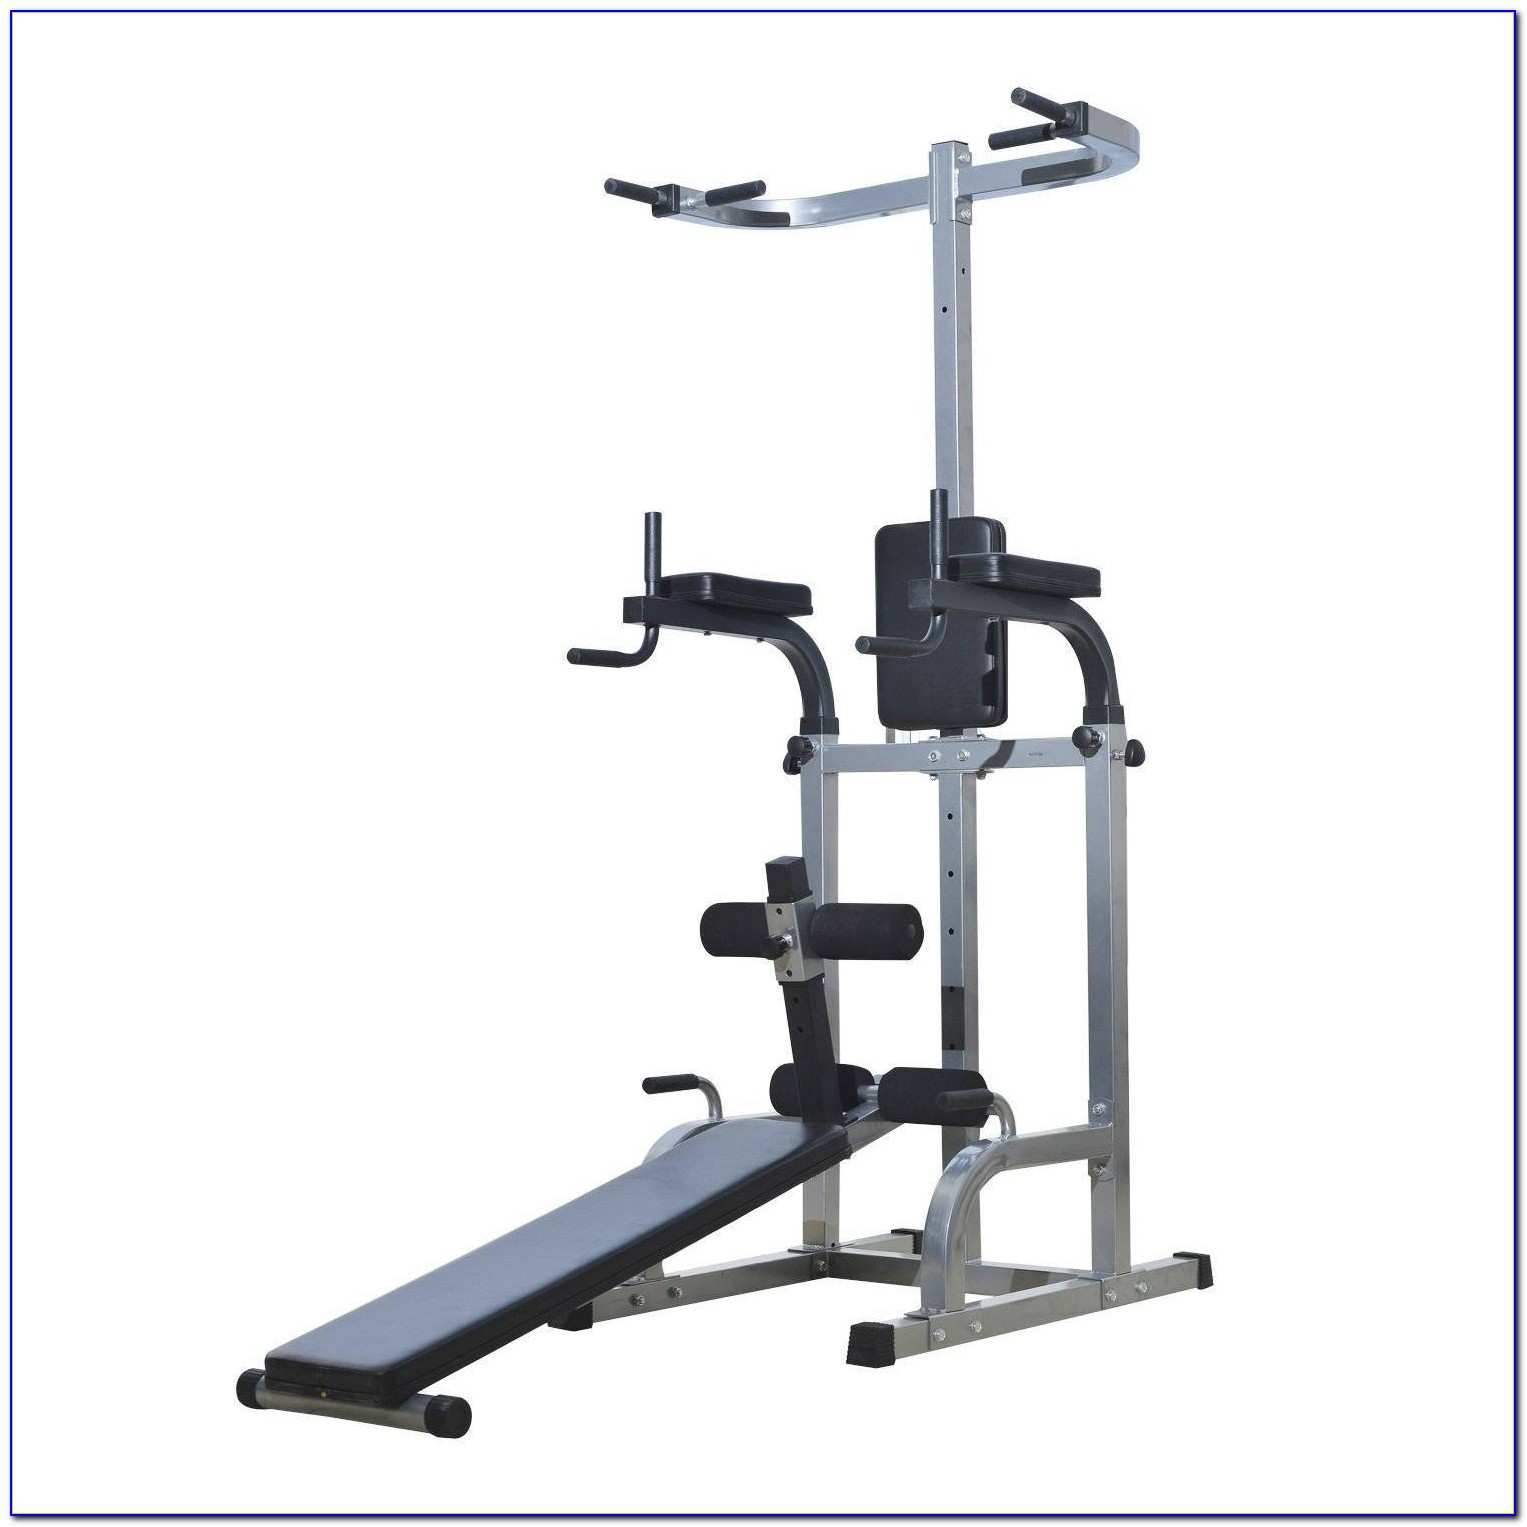 Ultrasport Adjustable All In One Weight Bench